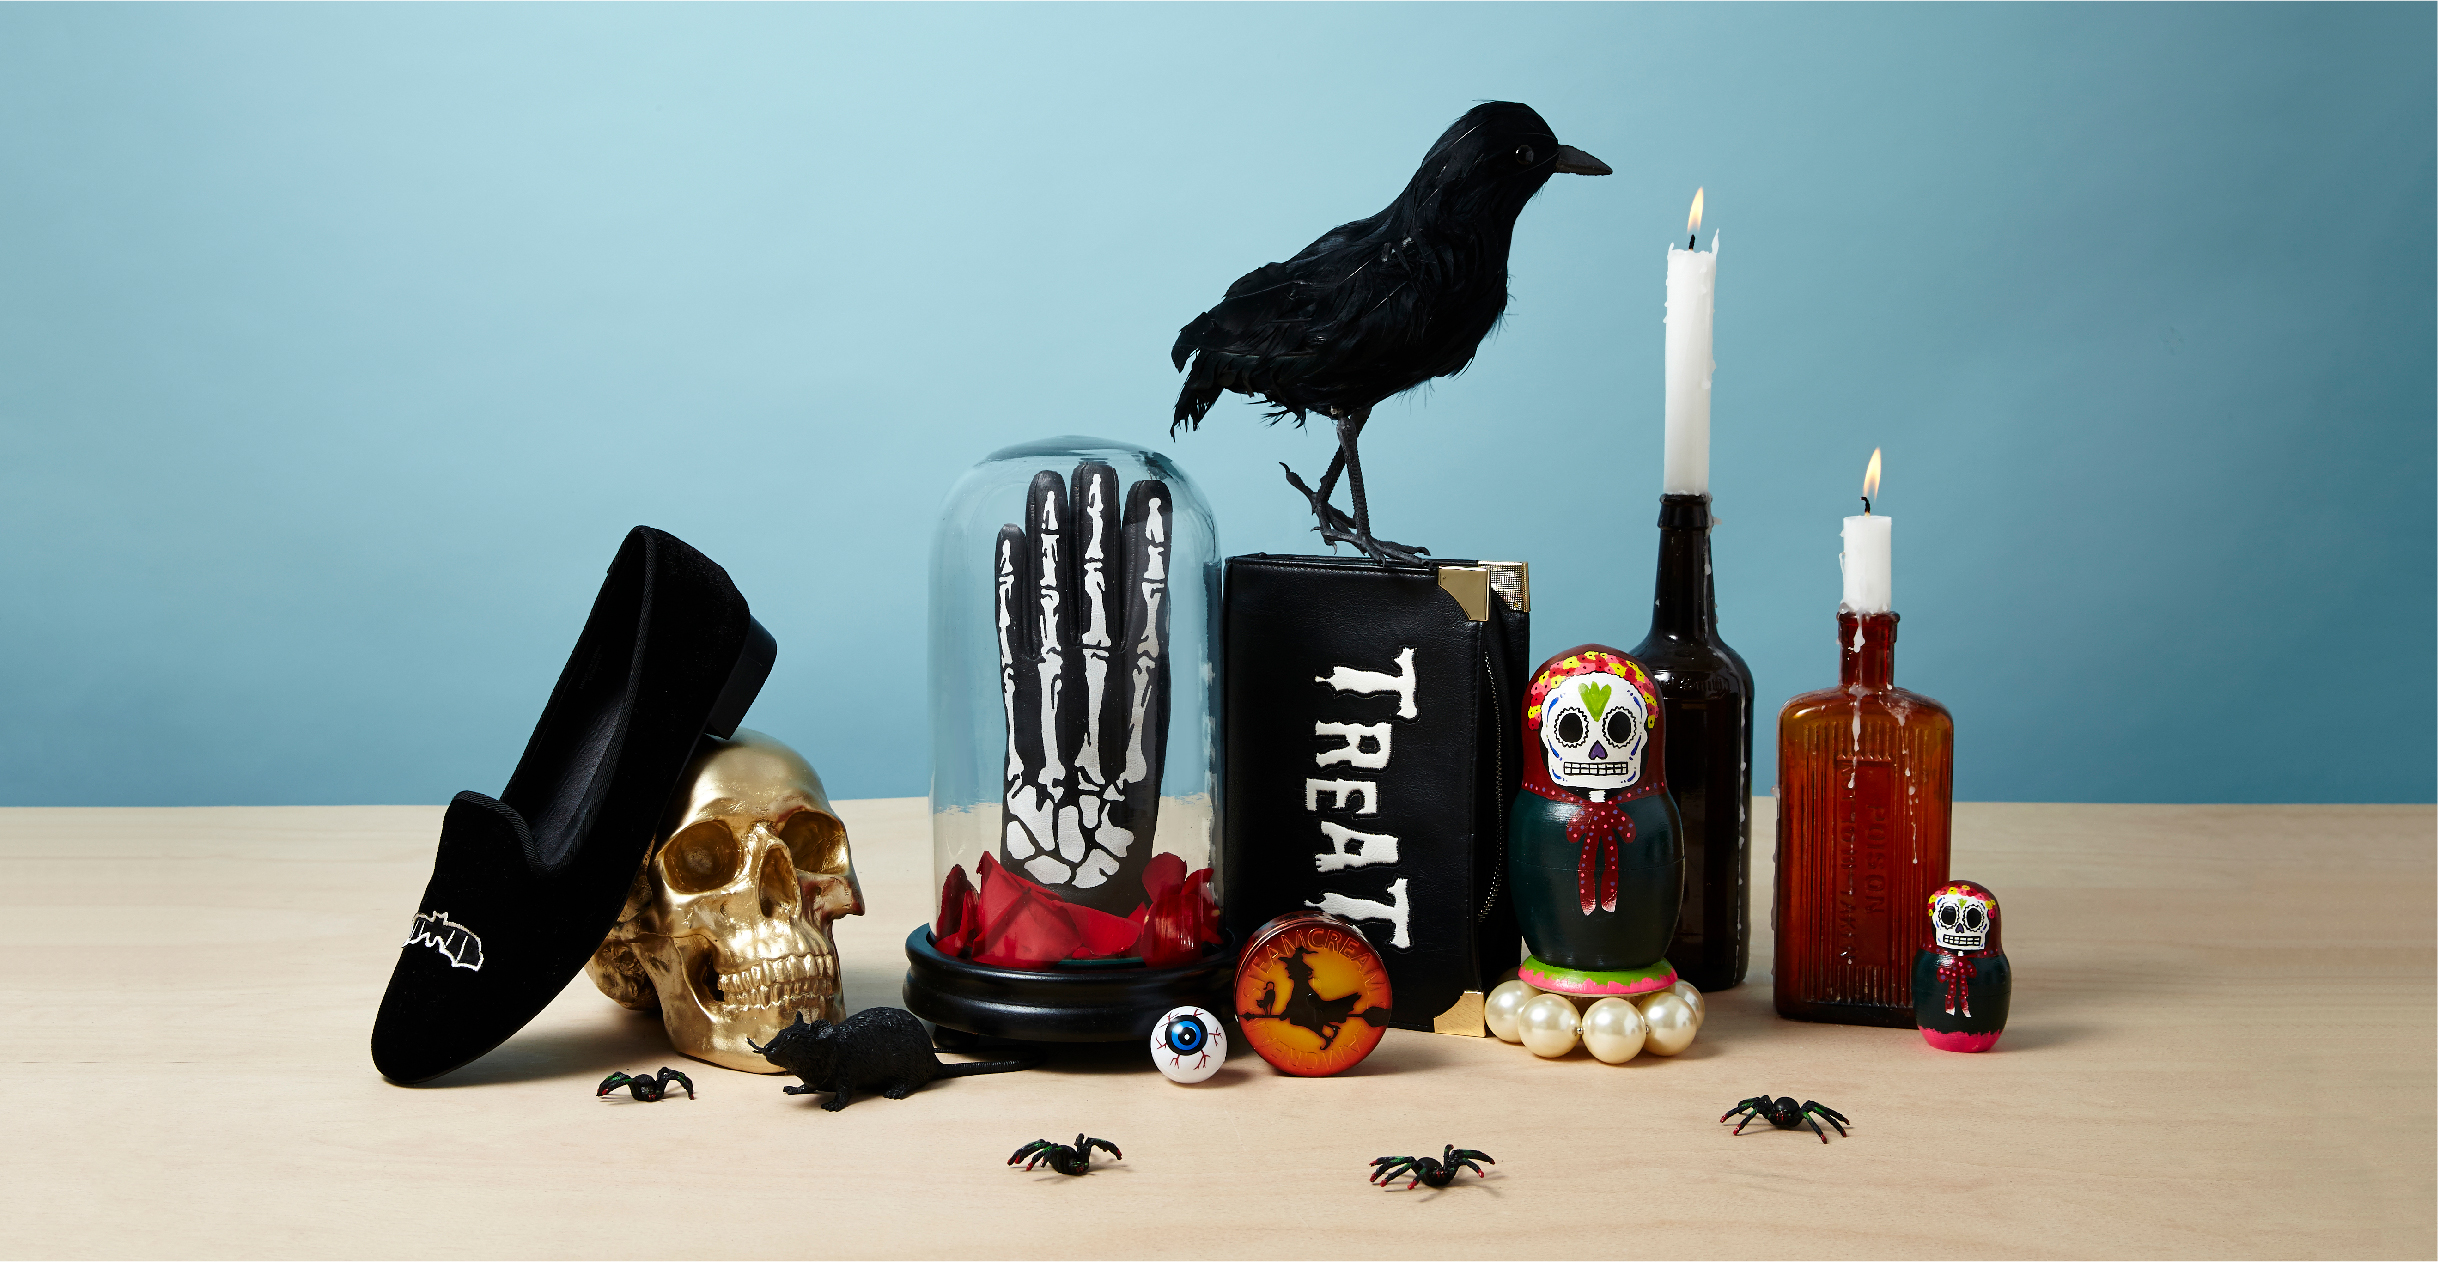 Group shot art direction still life of Halloween fashion